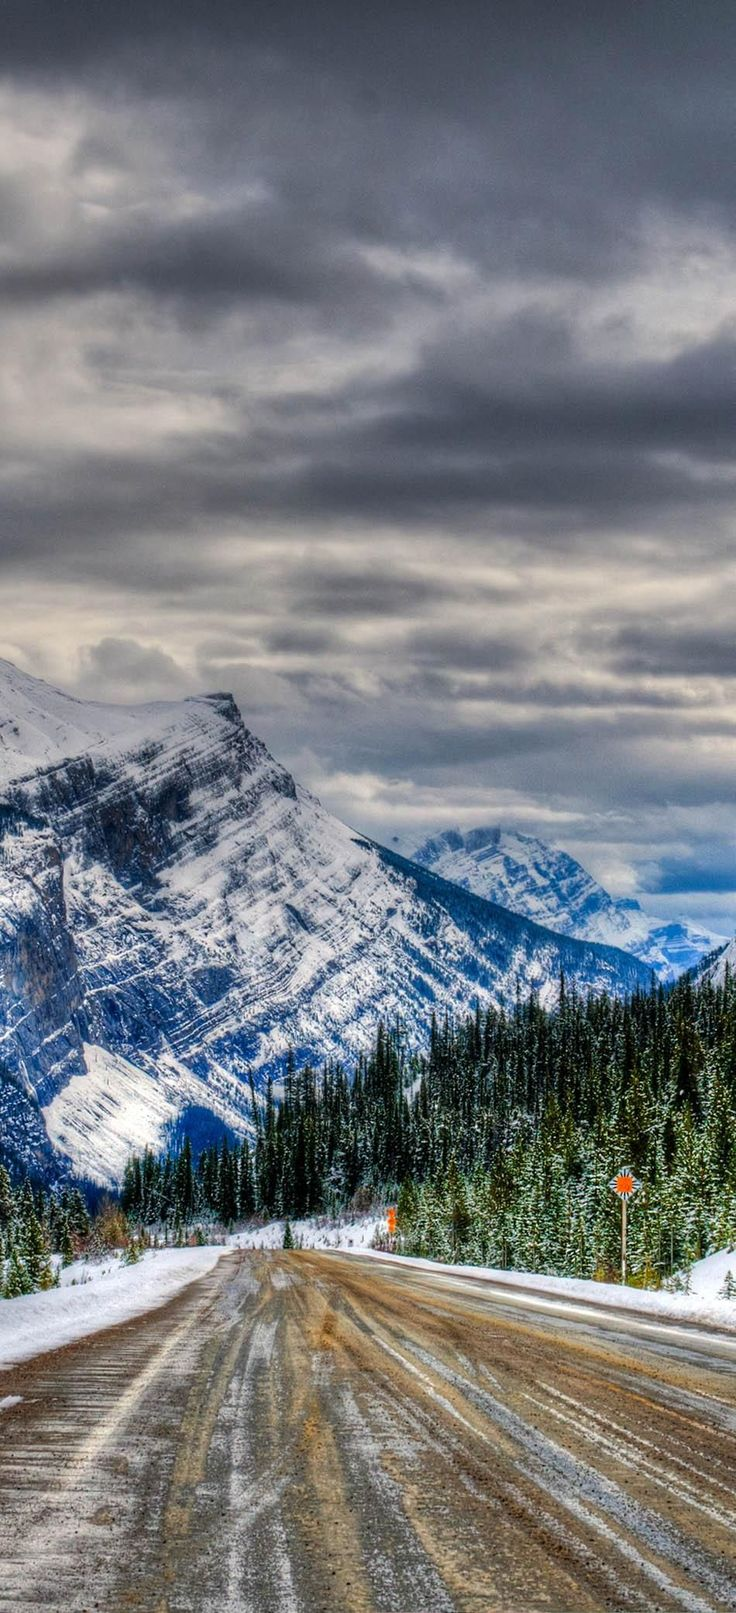 Icy winter road, Icefields Parkway, Banff and Jasper National Parks Alberta Canada   23 Roads you Have to Drive in Your Lifetime